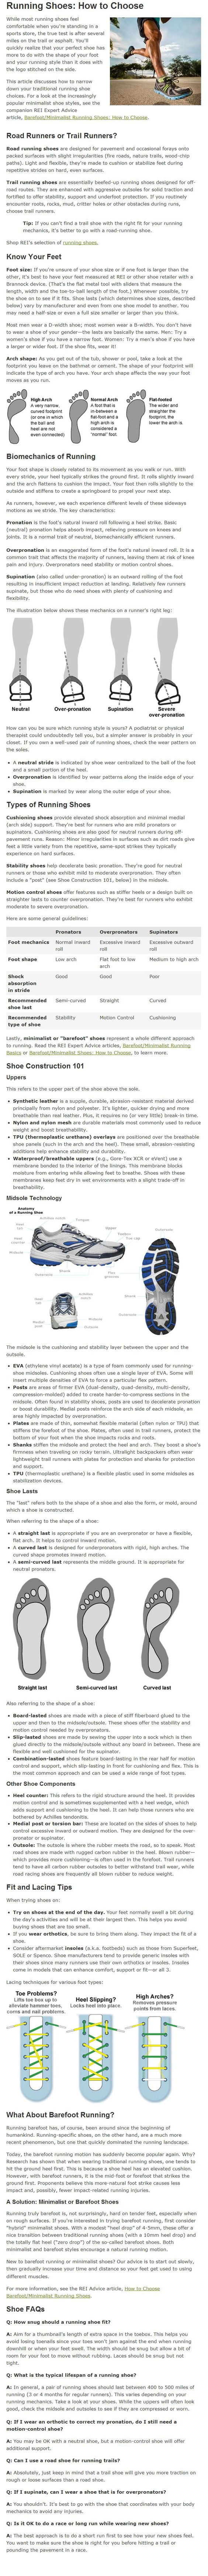 running shoes how to choose